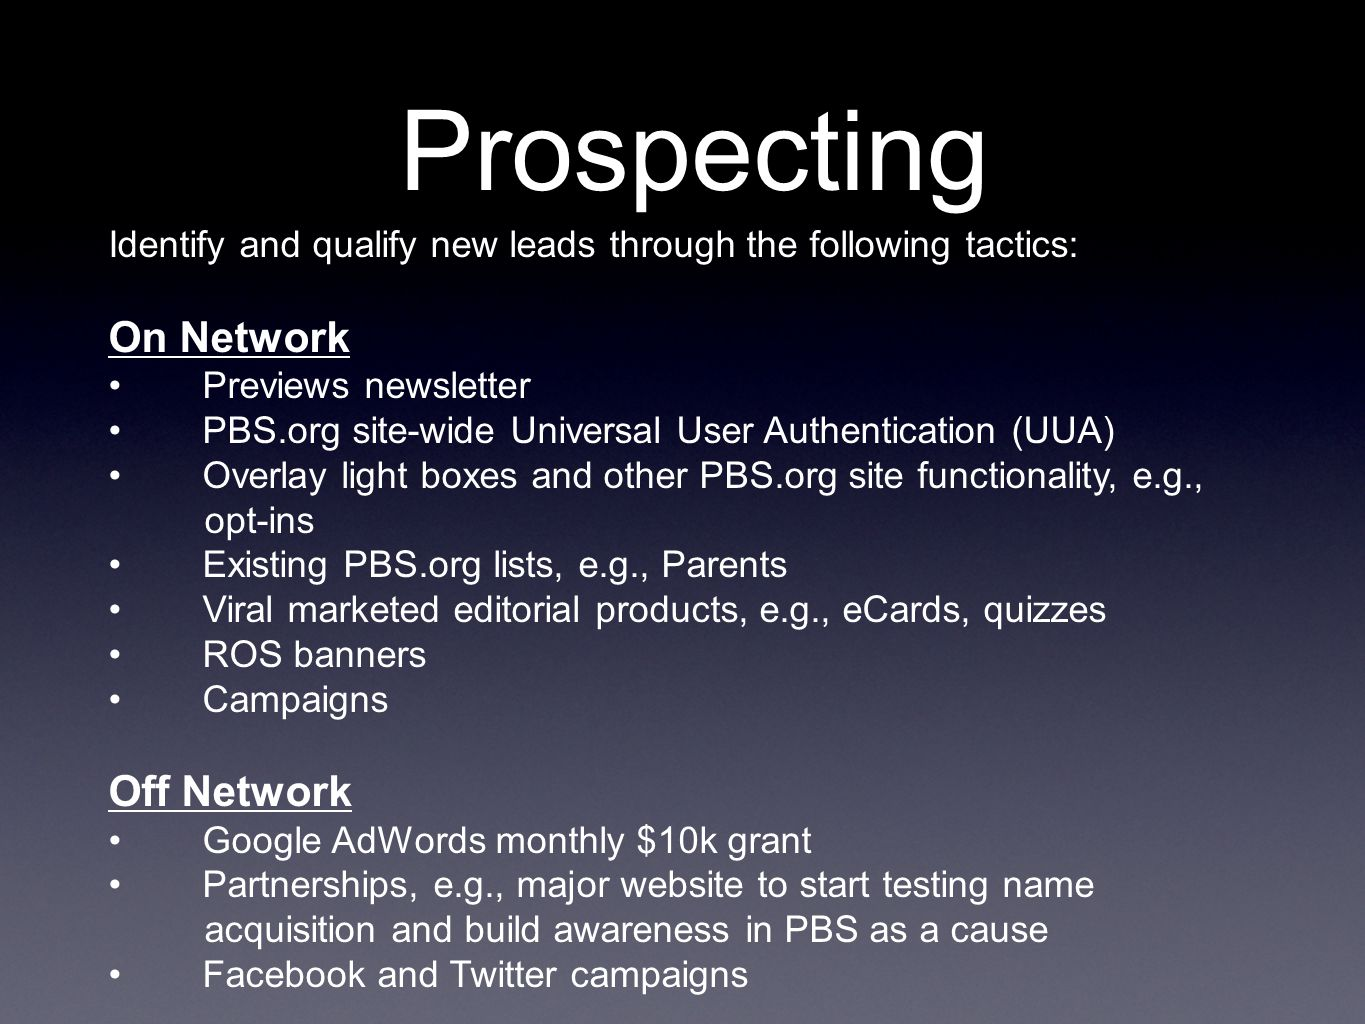 Prospecting Identify and qualify new leads through the following tactics: On Network Previews newsletter PBS.org site-wide Universal User Authentication (UUA) Overlay light boxes and other PBS.org site functionality, e.g., opt-ins Existing PBS.org lists, e.g., Parents Viral marketed editorial products, e.g., eCards, quizzes ROS banners Campaigns Off Network Google AdWords monthly $10k grant Partnerships, e.g., major website to start testing name acquisition and build awareness in PBS as a cause Facebook and Twitter campaigns